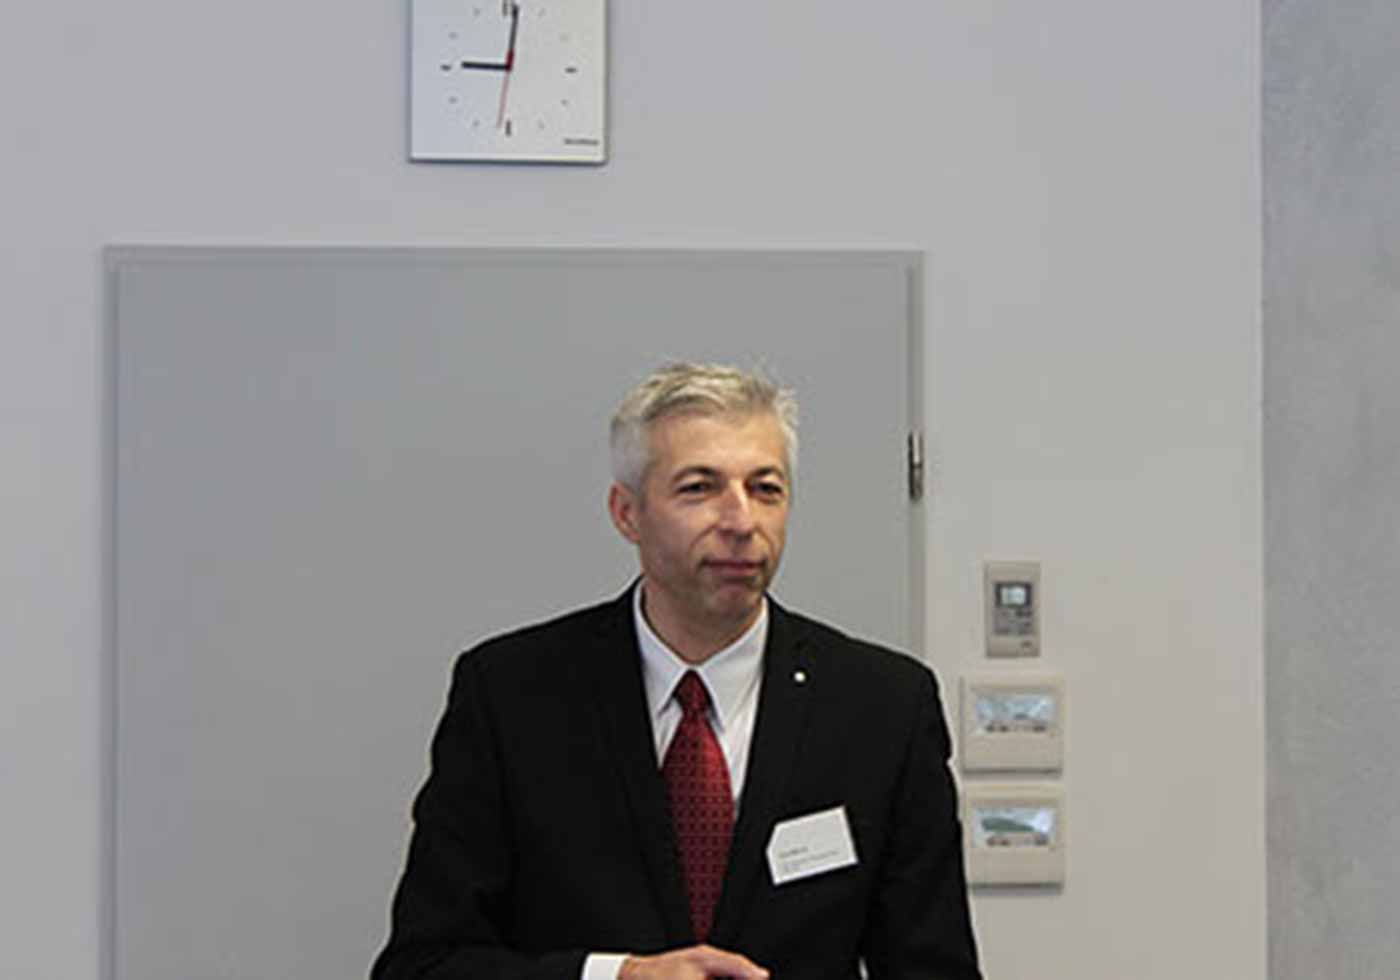 Gerd Maurer spoke at an event organised by the AGI Süd